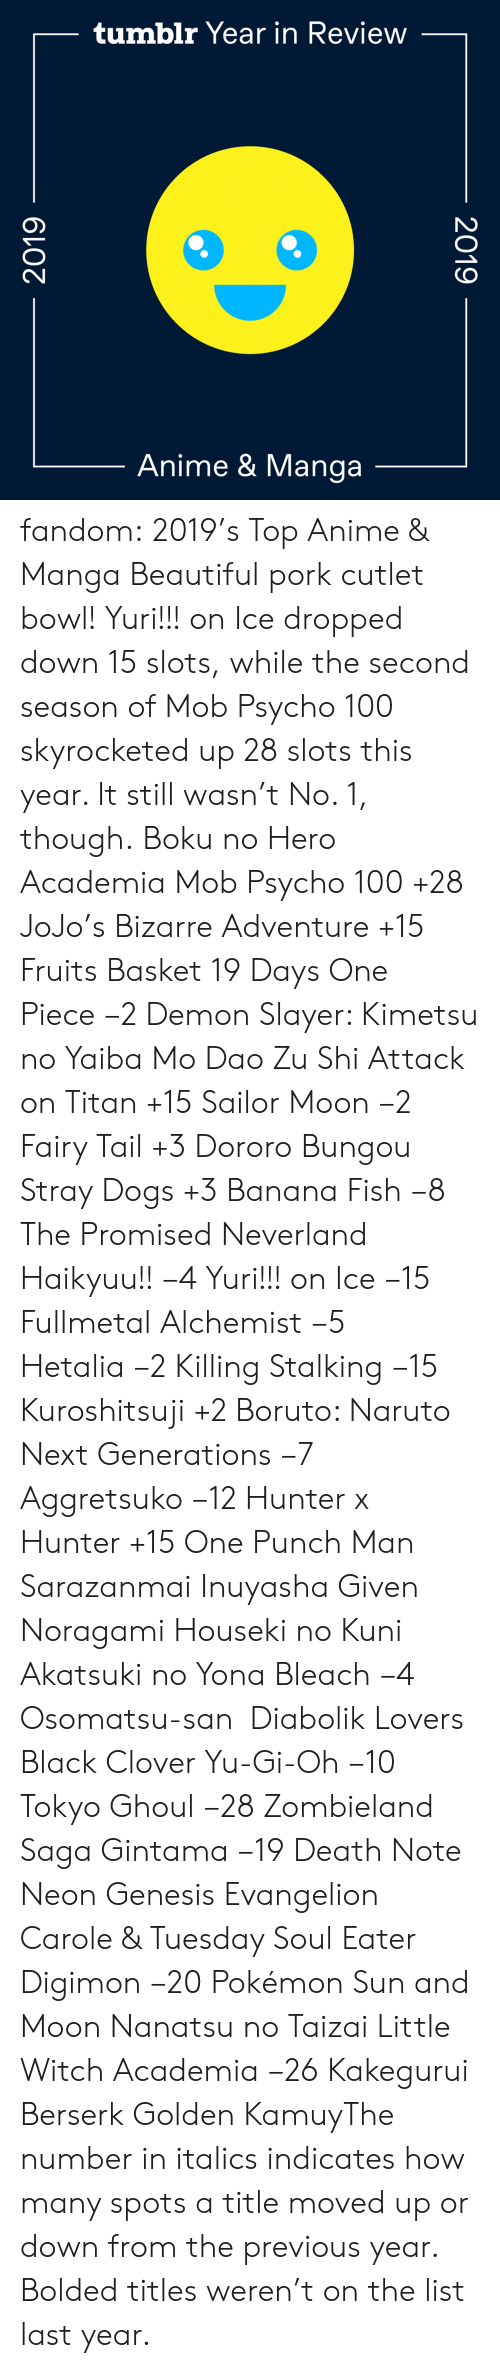 mob: tumblr Year in Review  Anime & Manga  2019  2019 fandom:  2019's Top Anime & Manga  Beautiful pork cutlet bowl! Yuri!!! on Ice dropped down 15 slots, while the second season of Mob Psycho 100 skyrocketed up 28 slots this year. It still wasn't No. 1, though.  Boku no Hero Academia  Mob Psycho 100 +28  JoJo's Bizarre Adventure +15  Fruits Basket  19 Days  One Piece −2  Demon Slayer: Kimetsu no Yaiba  Mo Dao Zu Shi  Attack on Titan +15  Sailor Moon −2  Fairy Tail +3  Dororo  Bungou Stray Dogs +3  Banana Fish −8  The Promised Neverland  Haikyuu!! −4  Yuri!!! on Ice −15  Fullmetal Alchemist −5  Hetalia −2  Killing Stalking −15  Kuroshitsuji +2  Boruto: Naruto Next Generations −7  Aggretsuko −12  Hunter x Hunter +15  One Punch Man  Sarazanmai  Inuyasha  Given  Noragami  Houseki no Kuni  Akatsuki no Yona  Bleach −4  Osomatsu-san   Diabolik Lovers  Black Clover  Yu-Gi-Oh −10  Tokyo Ghoul −28  Zombieland Saga  Gintama −19  Death Note  Neon Genesis Evangelion  Carole & Tuesday  Soul Eater  Digimon −20  Pokémon Sun and Moon  Nanatsu no Taizai  Little Witch Academia −26  Kakegurui  Berserk Golden KamuyThe number in italics indicates how many spots a title moved up or down from the previous year. Bolded titles weren't on the list last year.